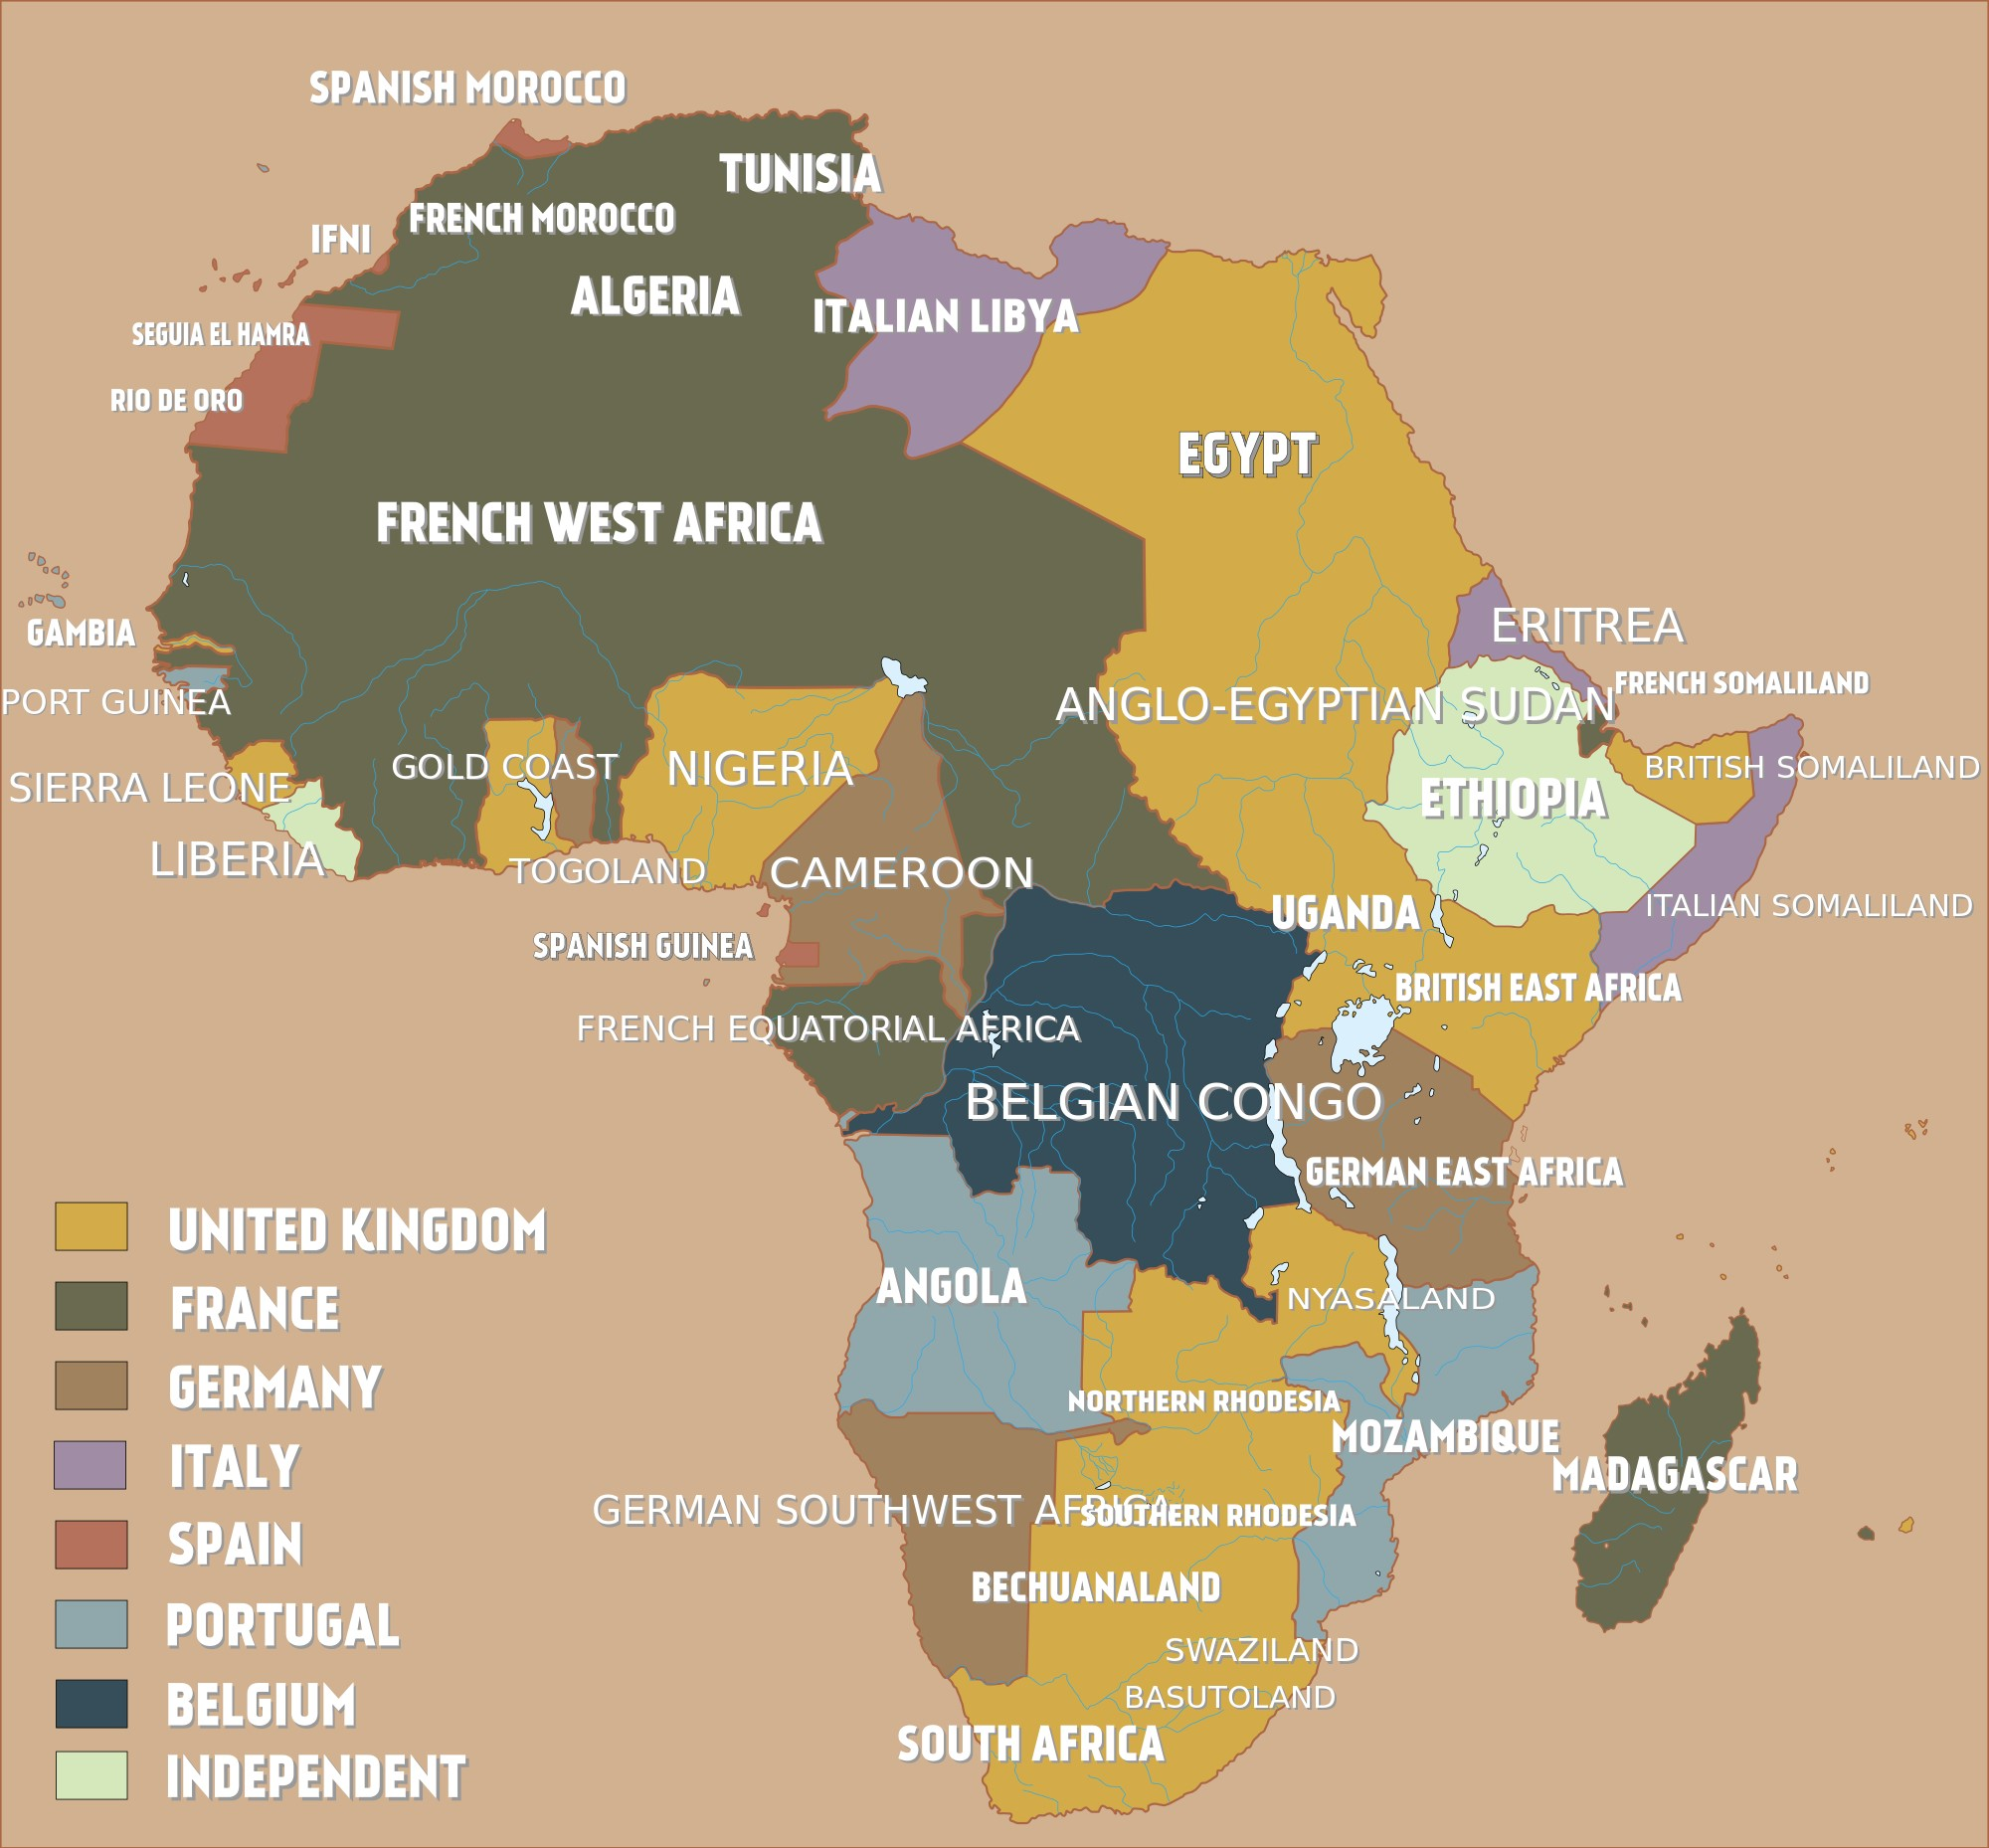 Map of Colonial Africa in the early twentieth century. Credit: Whiplashoo21.